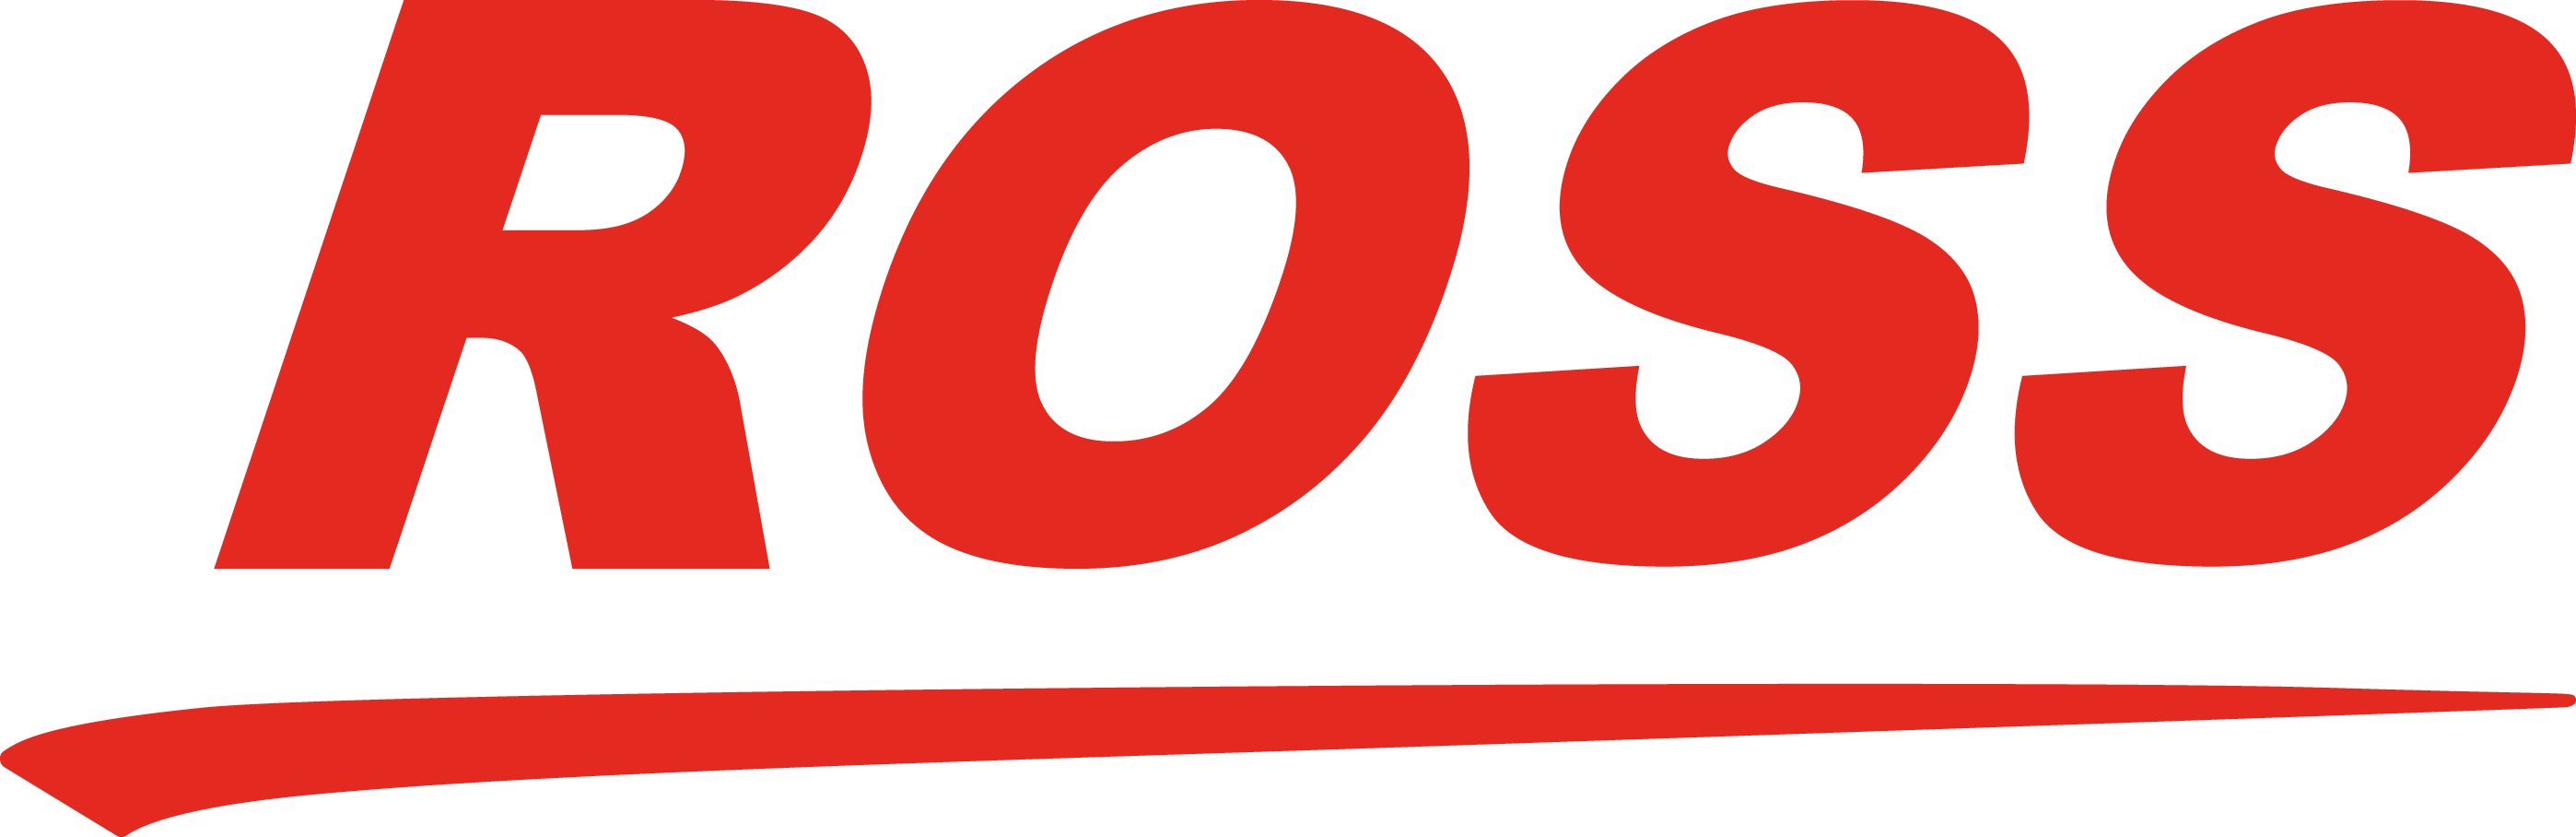 Ross Video Ltd.